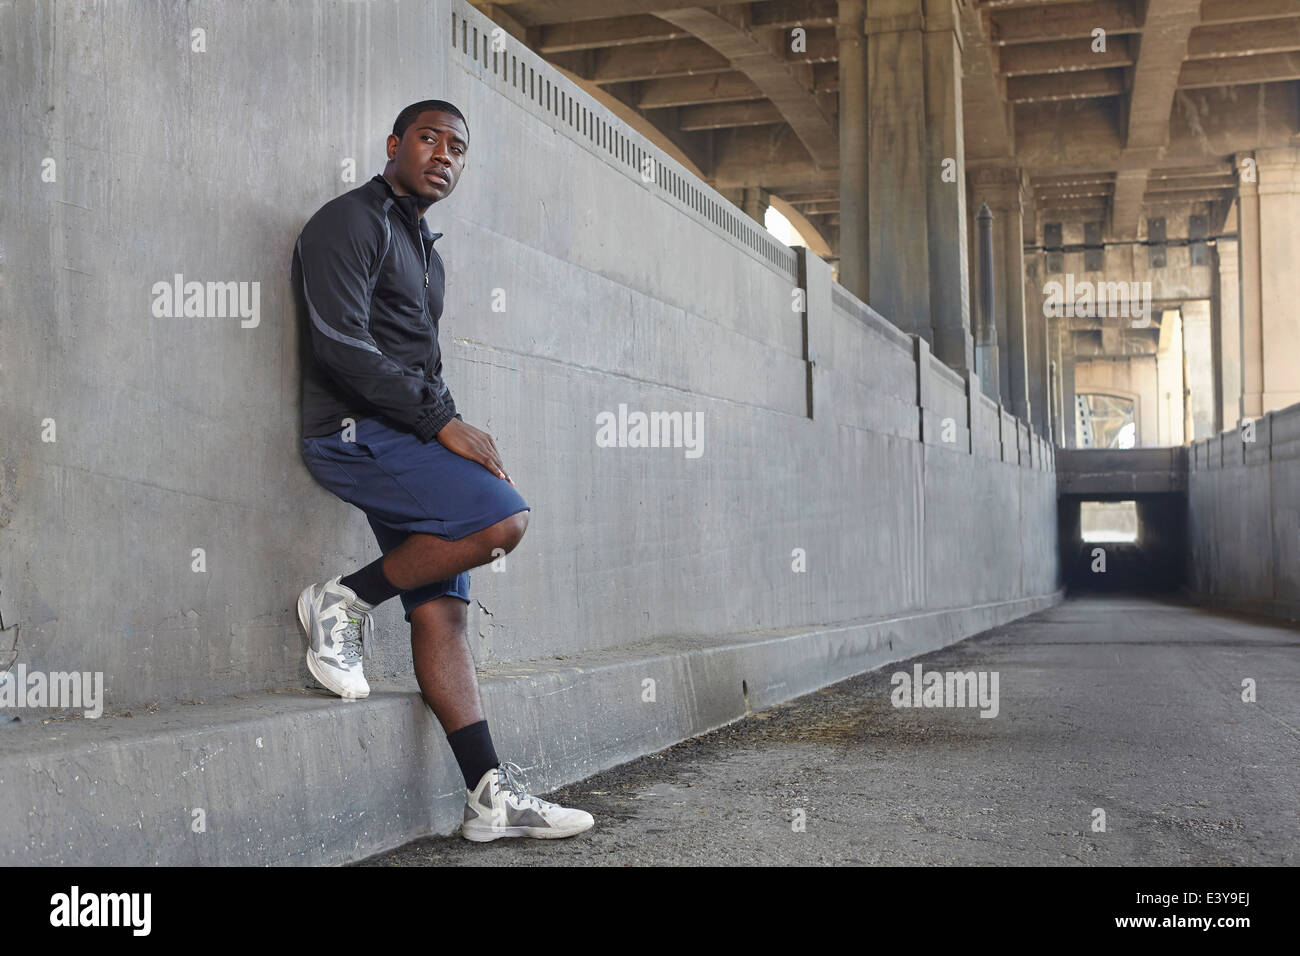 Young male runner taking a break on city bridge - Stock Image